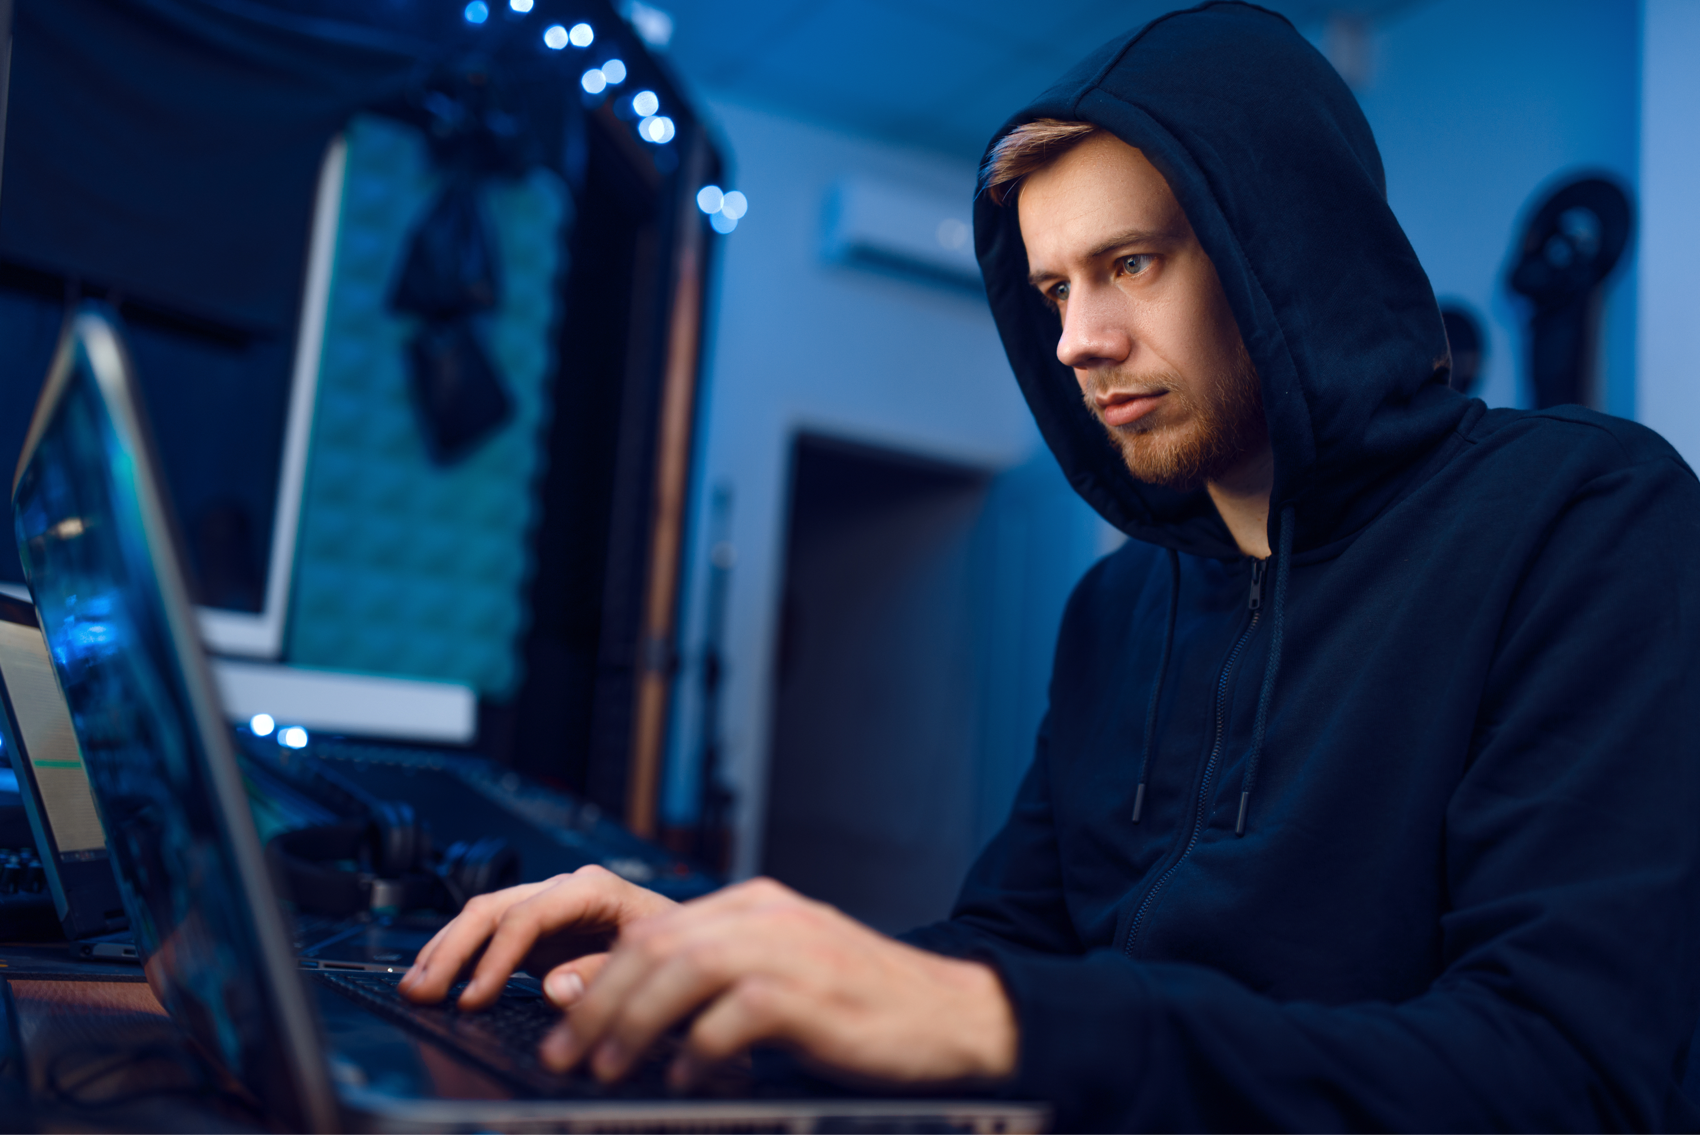 programmer-working-on-laptop-computer-technology-ZYTBRS9